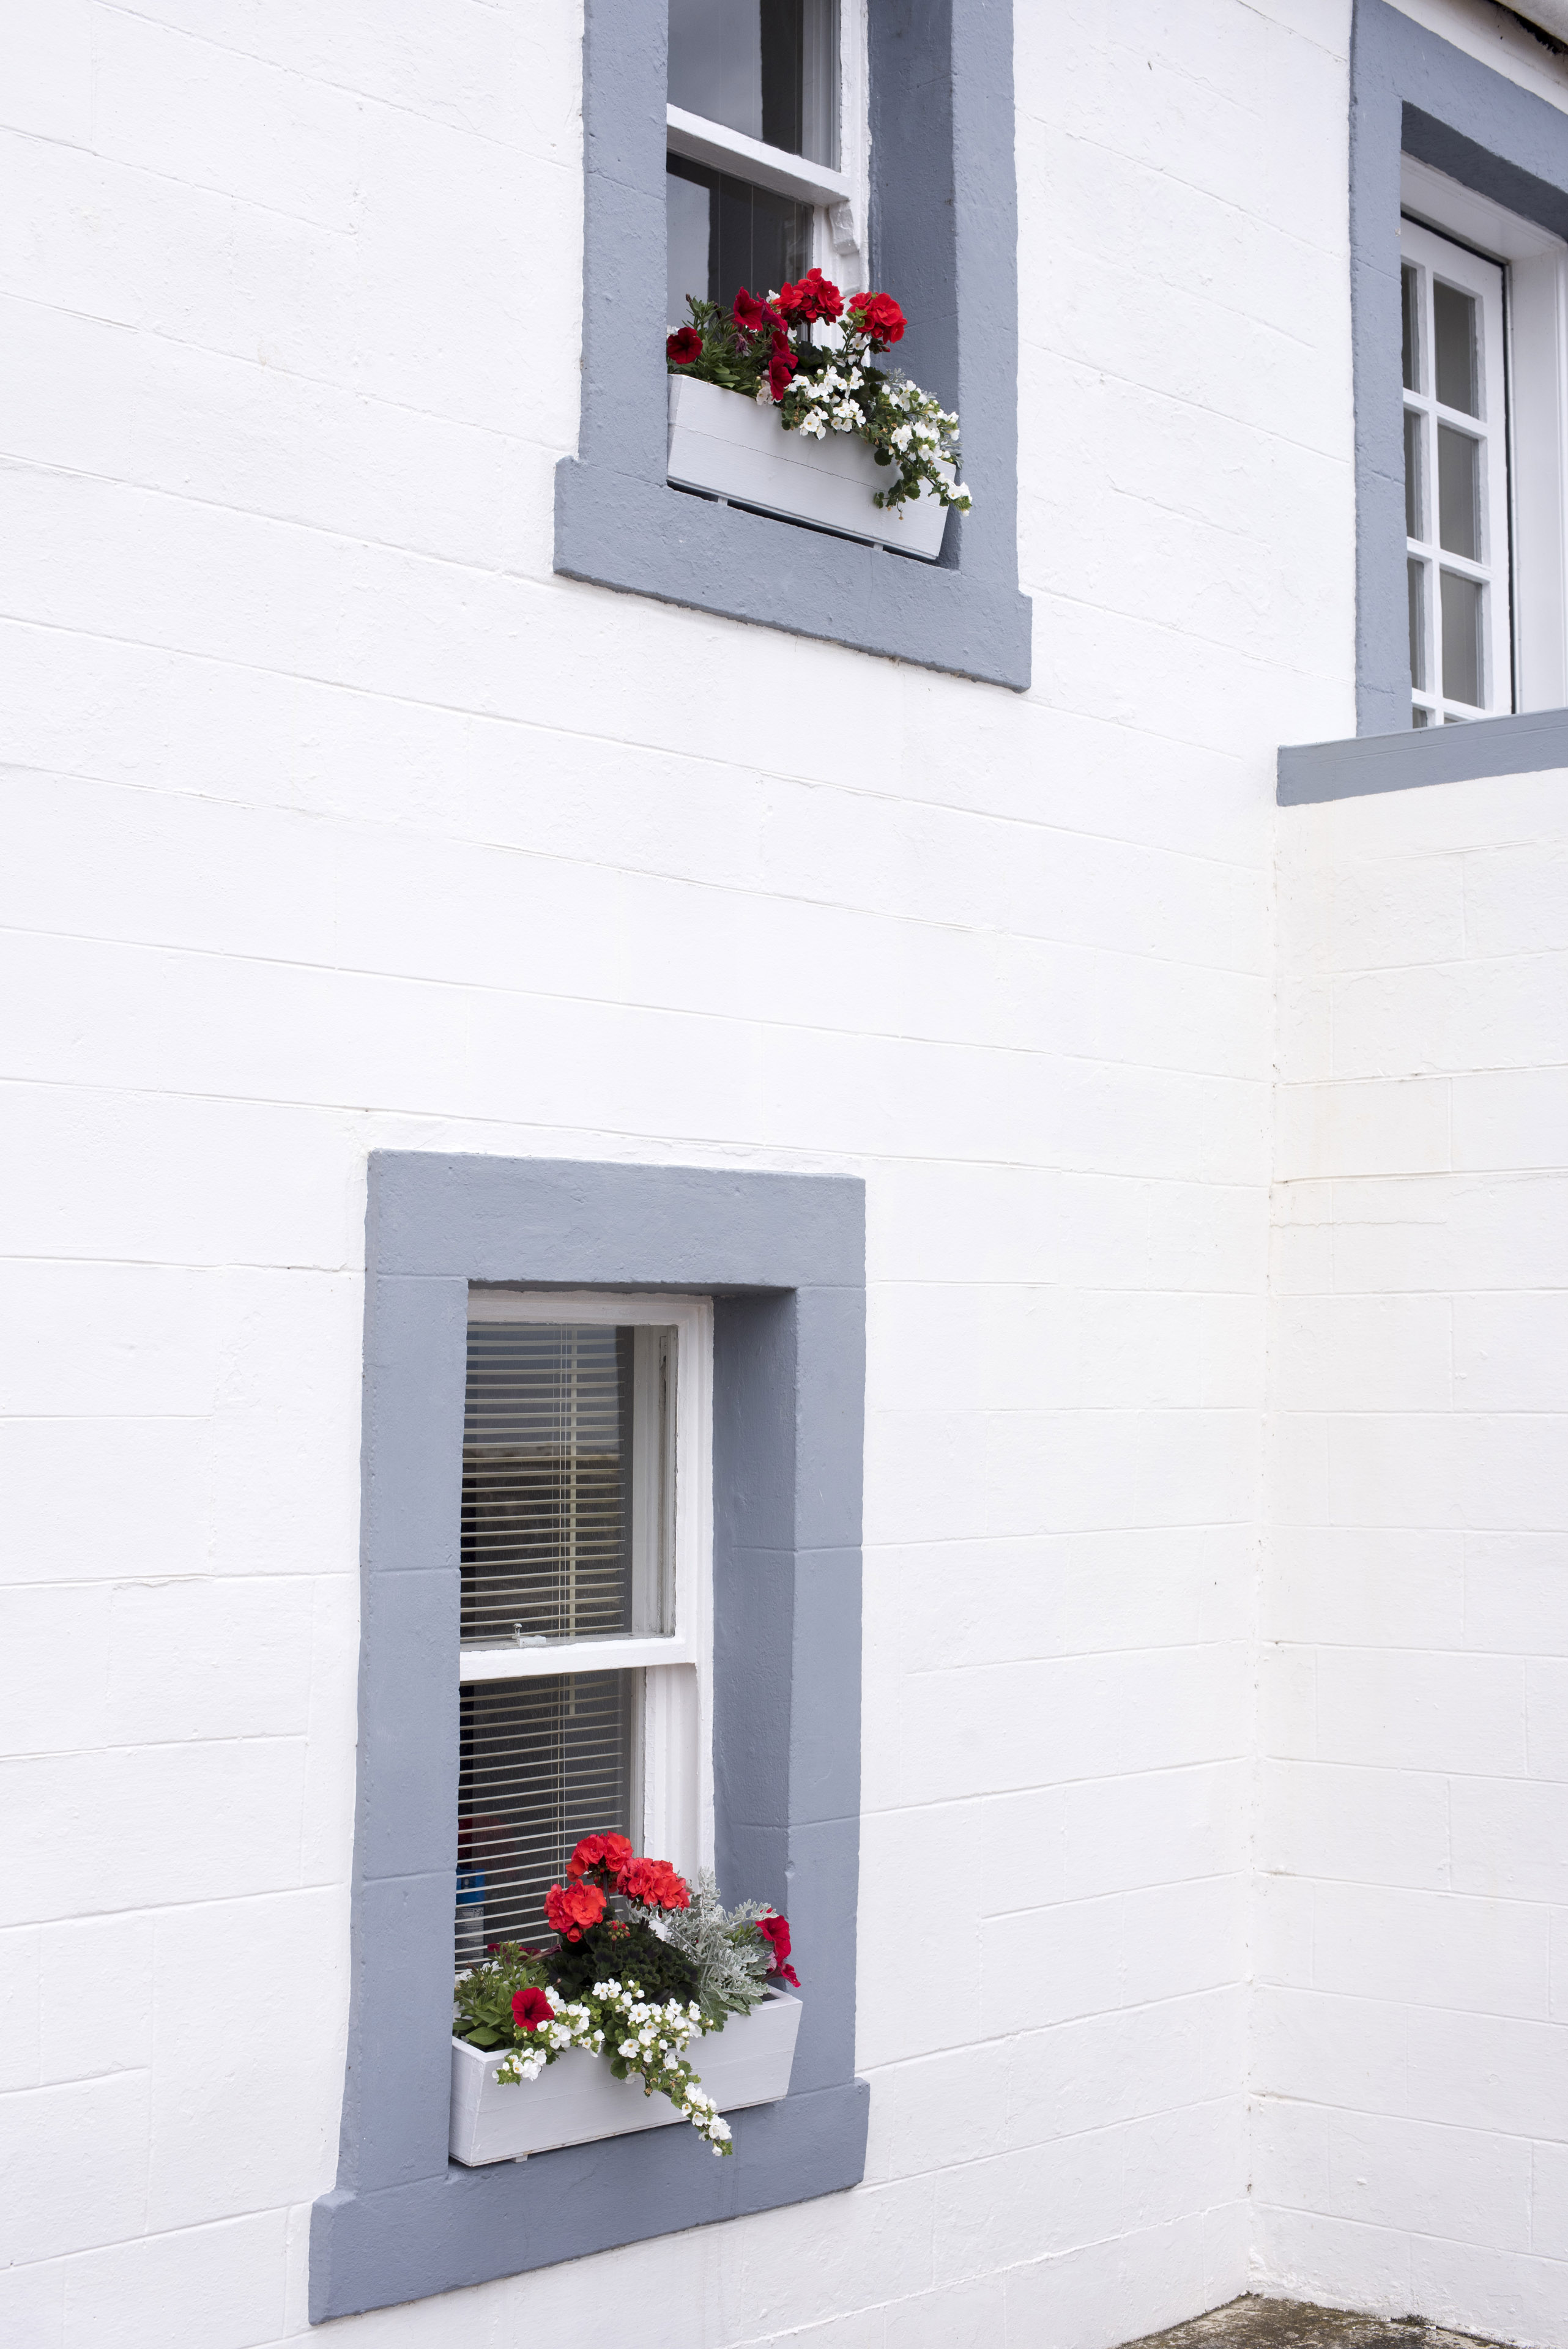 Colorful red and white flowers growing in window boxes in the grey windows of a whitewashed house in a close up background view